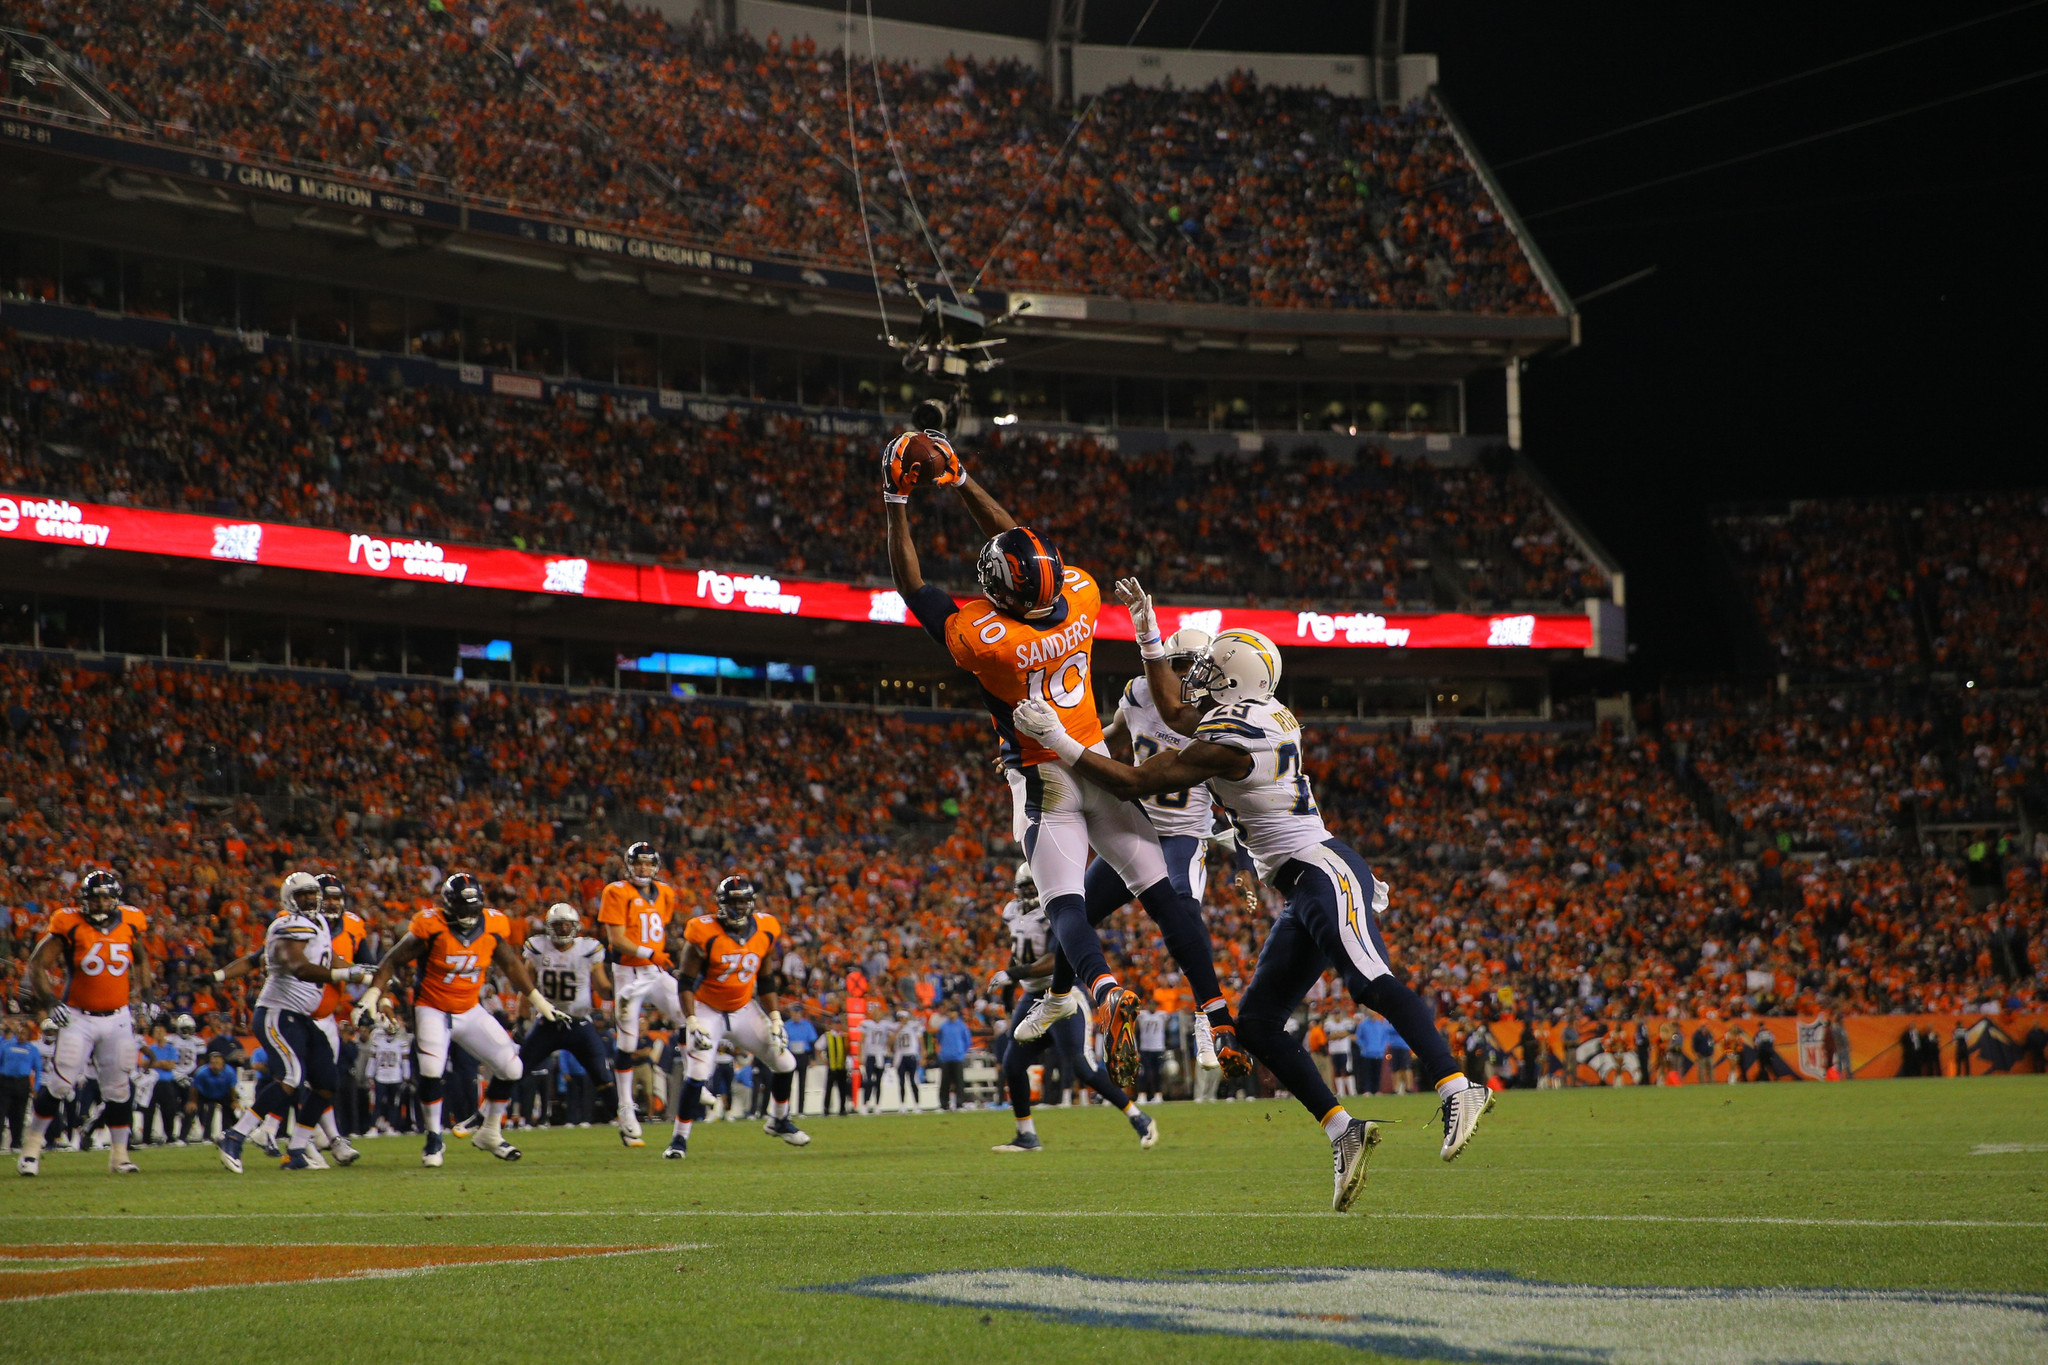 Peyton Manning throws 3 TDs as Broncos top Chargers 35-21